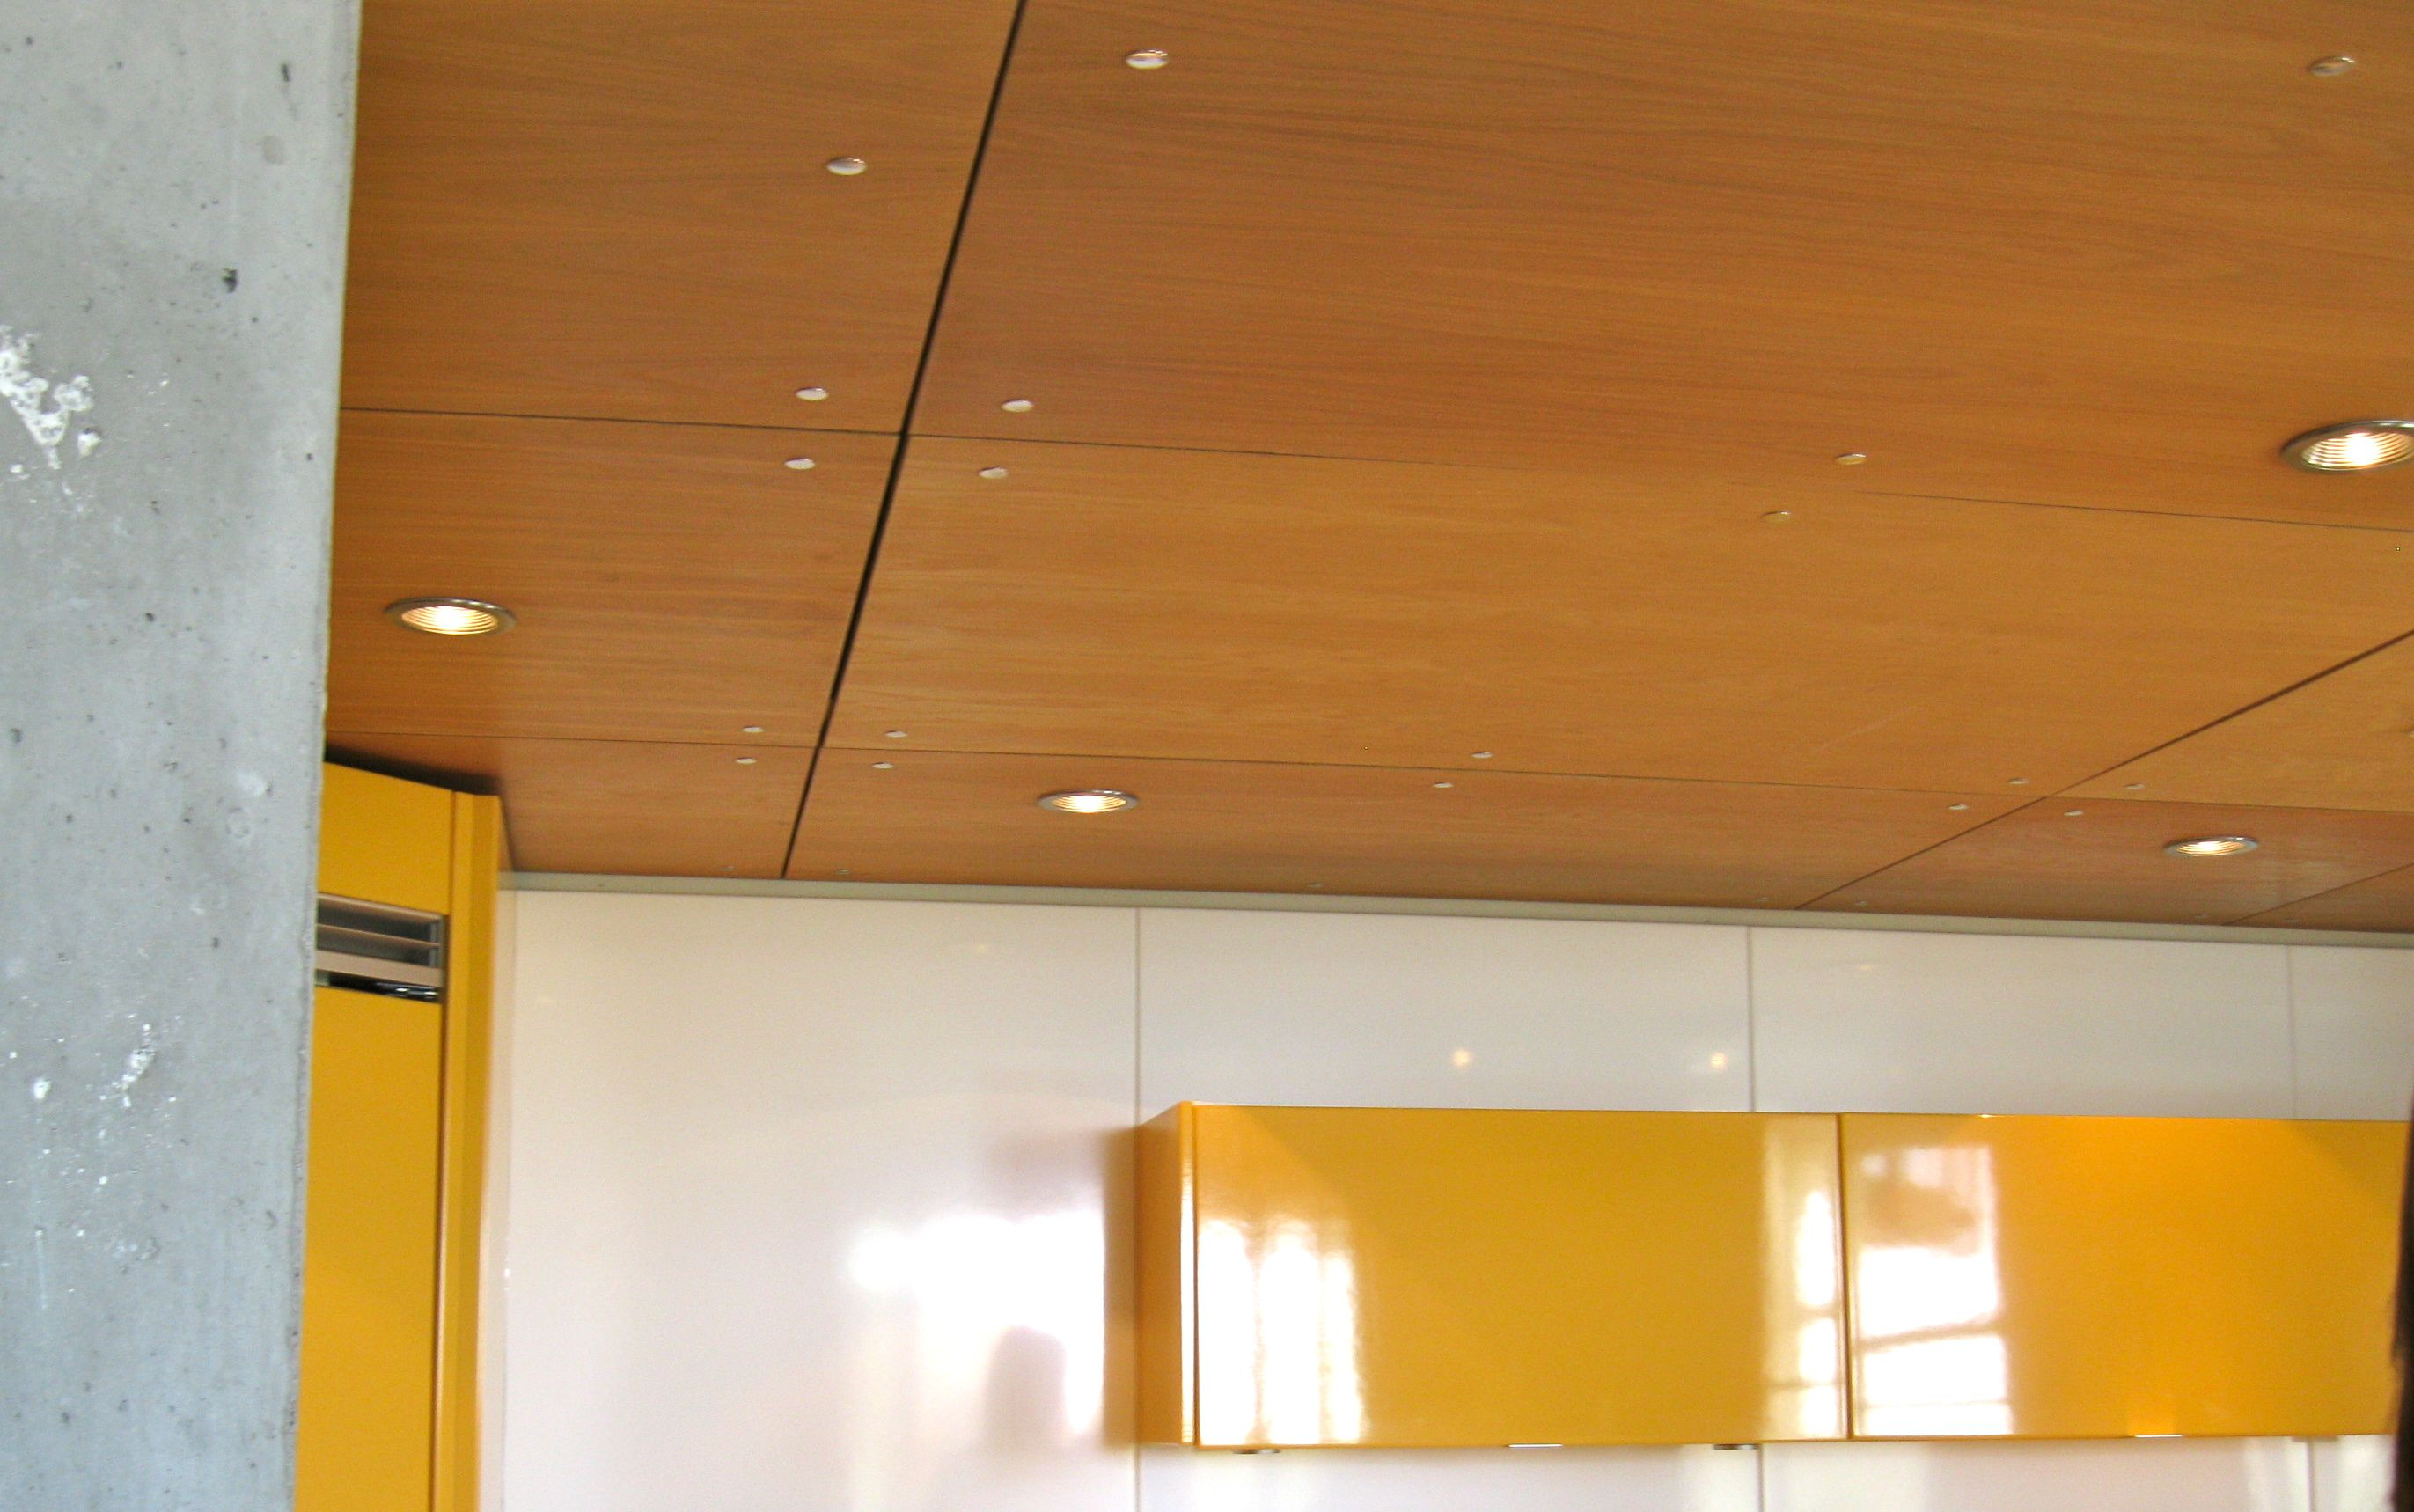 1960 Style Ceilings Tiles Plywood Ceiling With Stainless